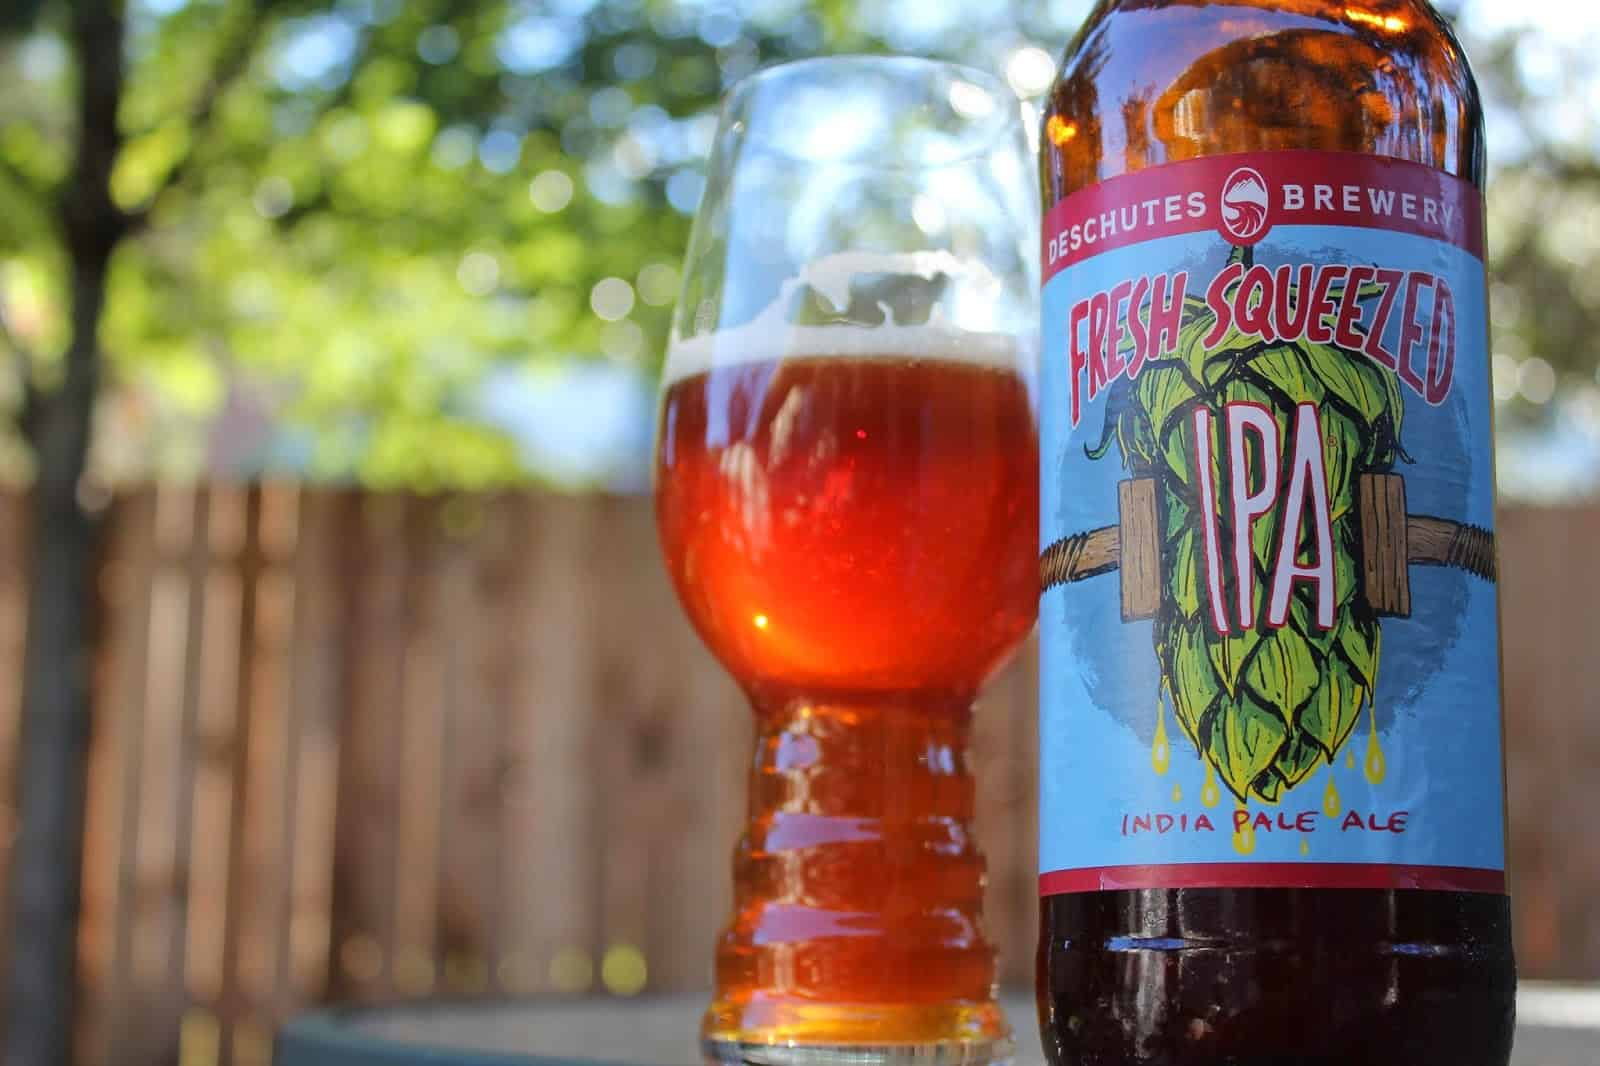 Deschutes Fresh Squeezed – best tasting beer